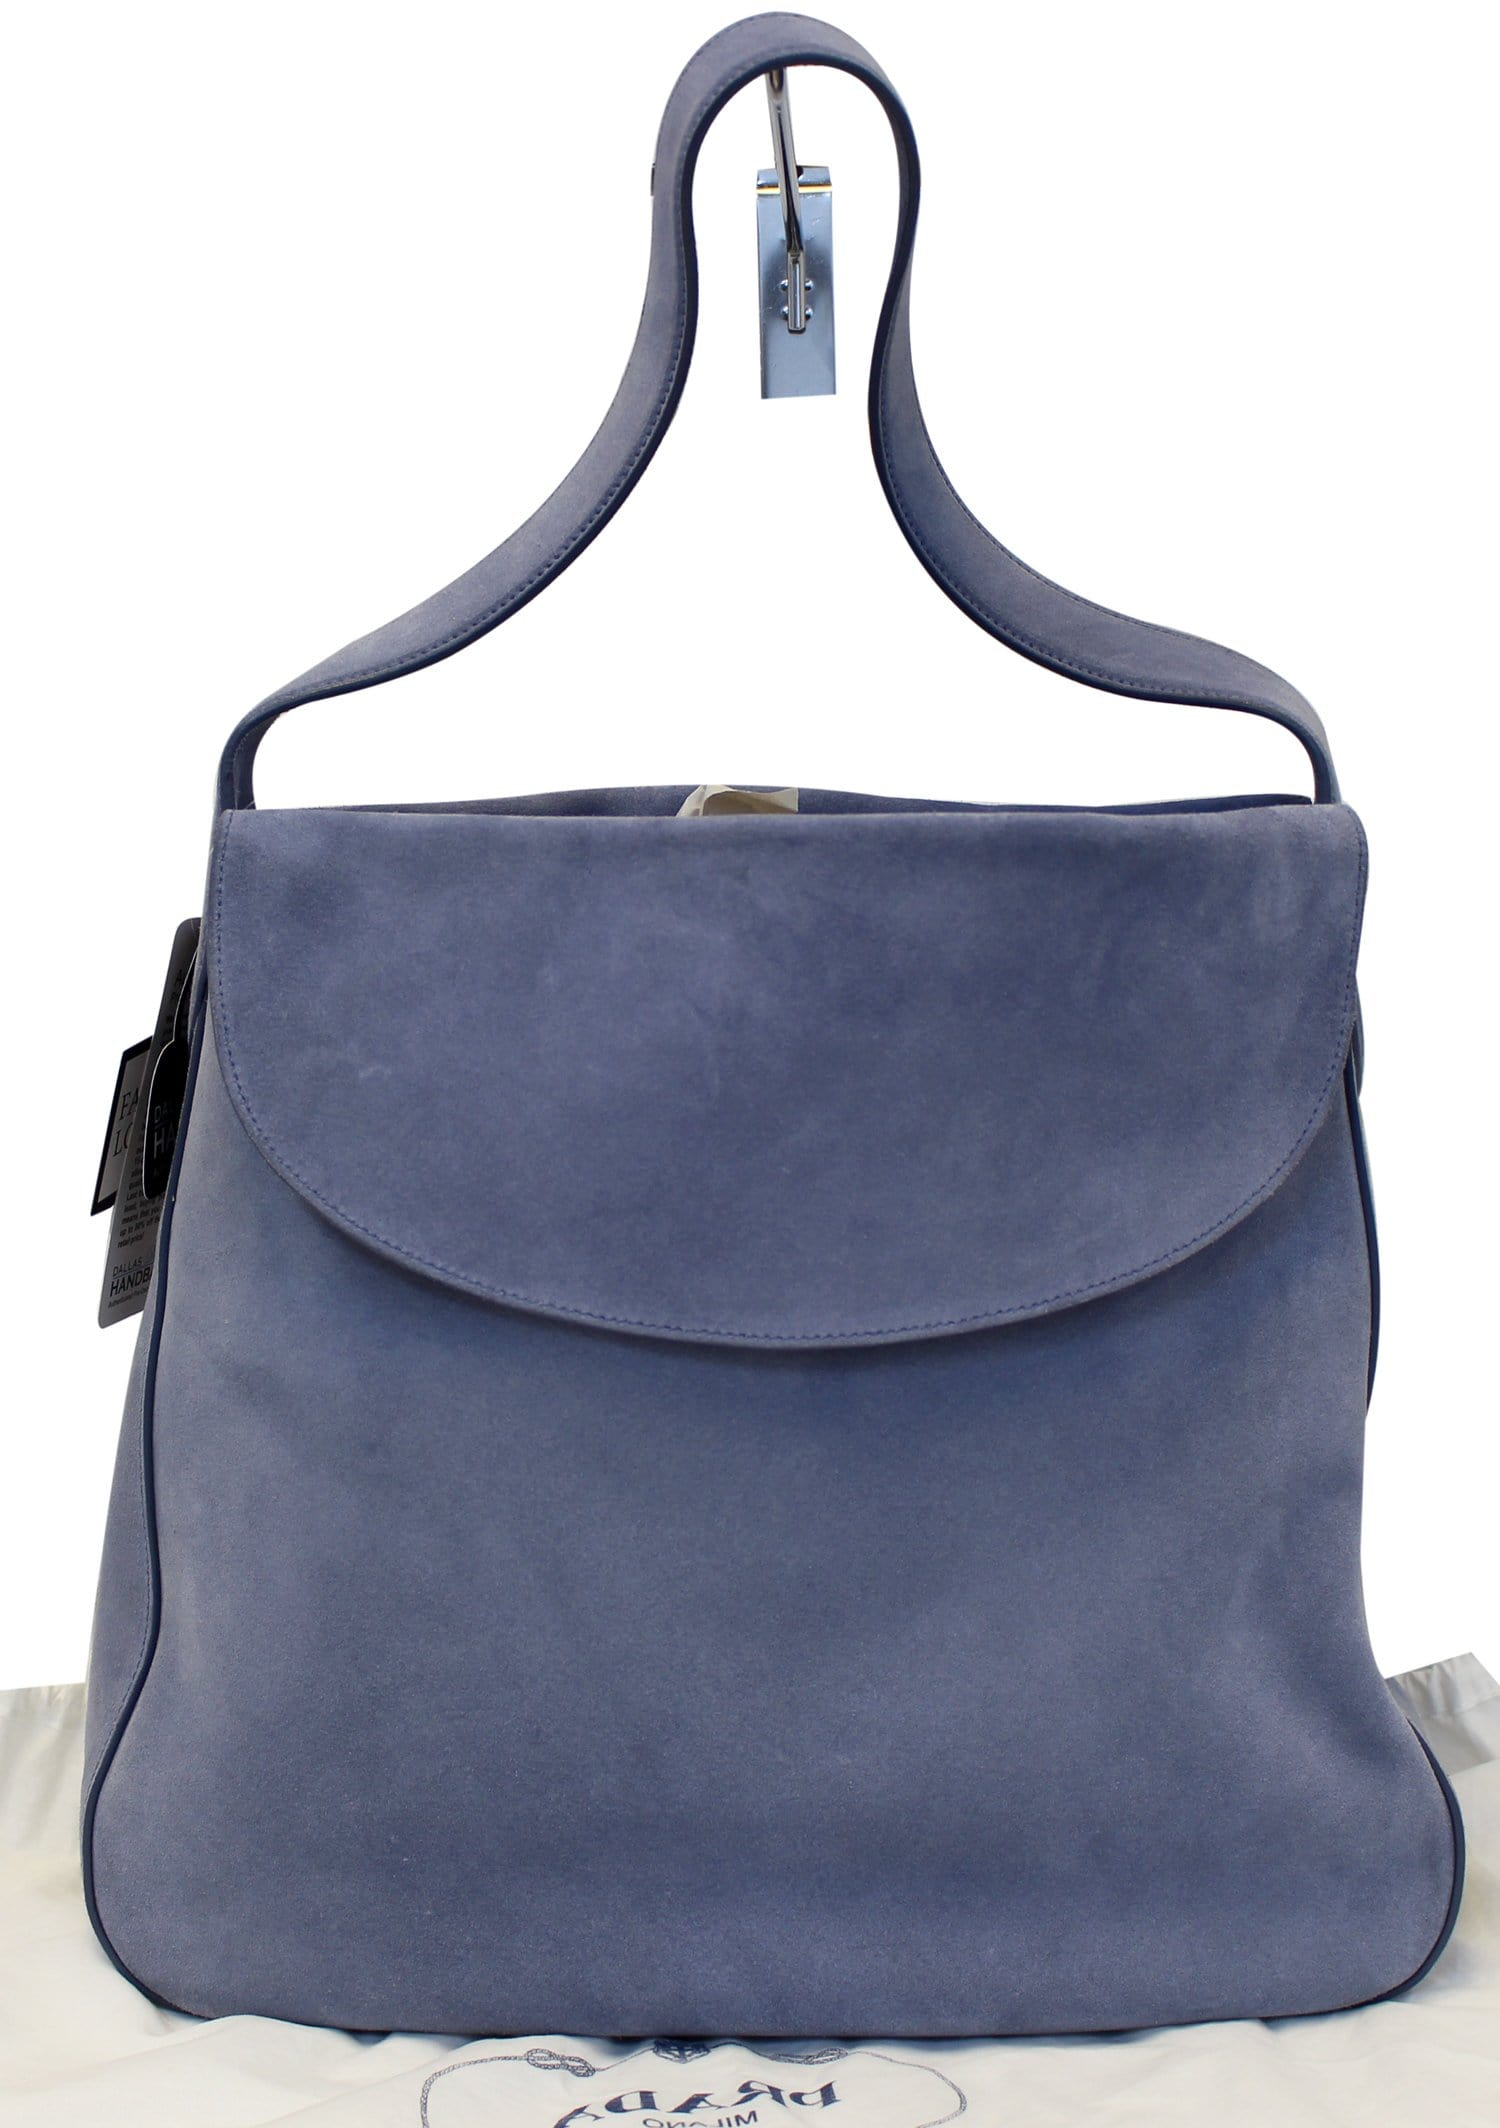 e7fb33af7c85 PRADA Vitello Daino Flap Suede Leather Hobo Bag Sky Blue